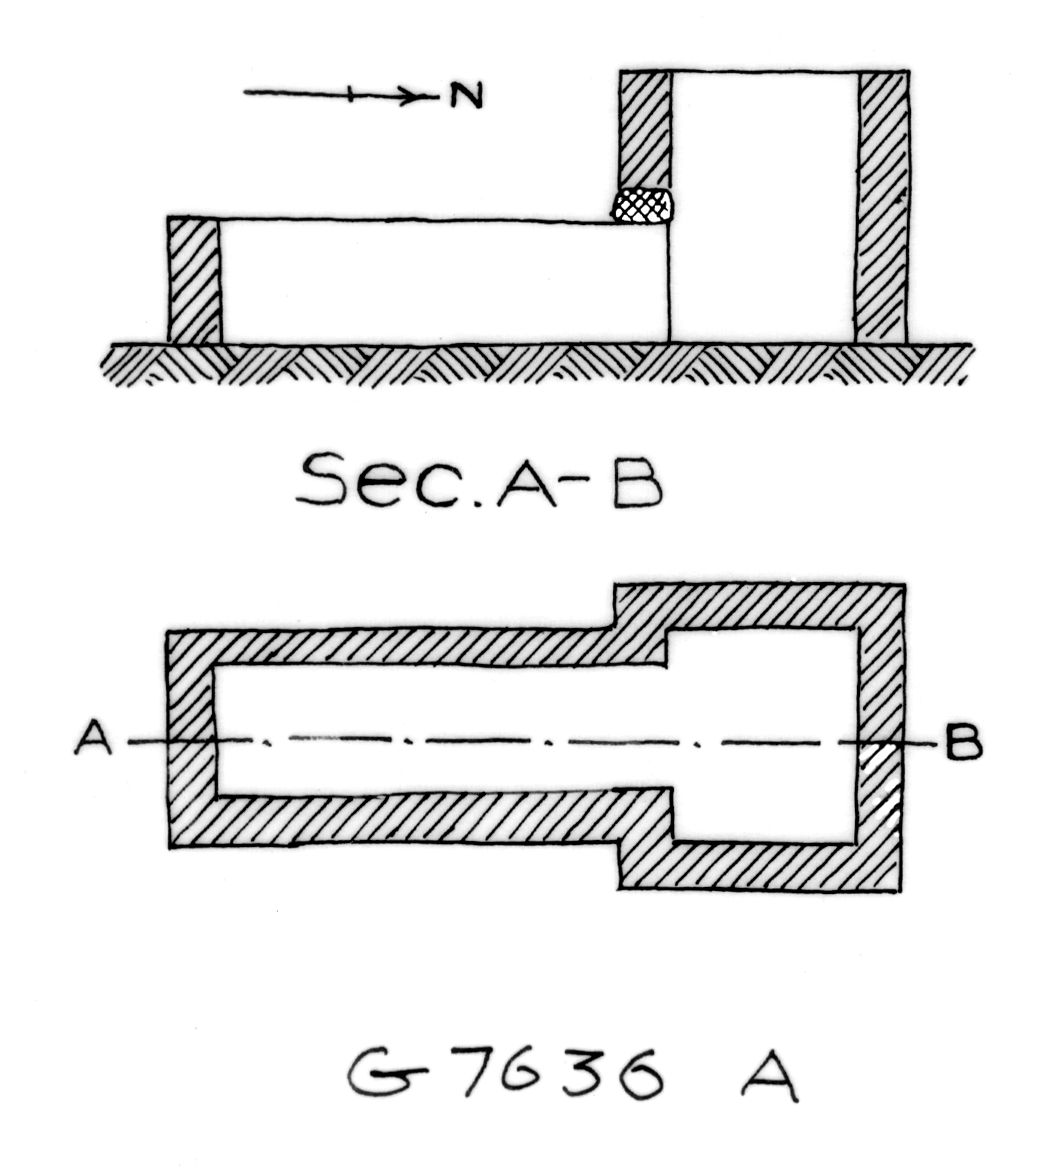 Maps and plans: G 7636, Shaft A